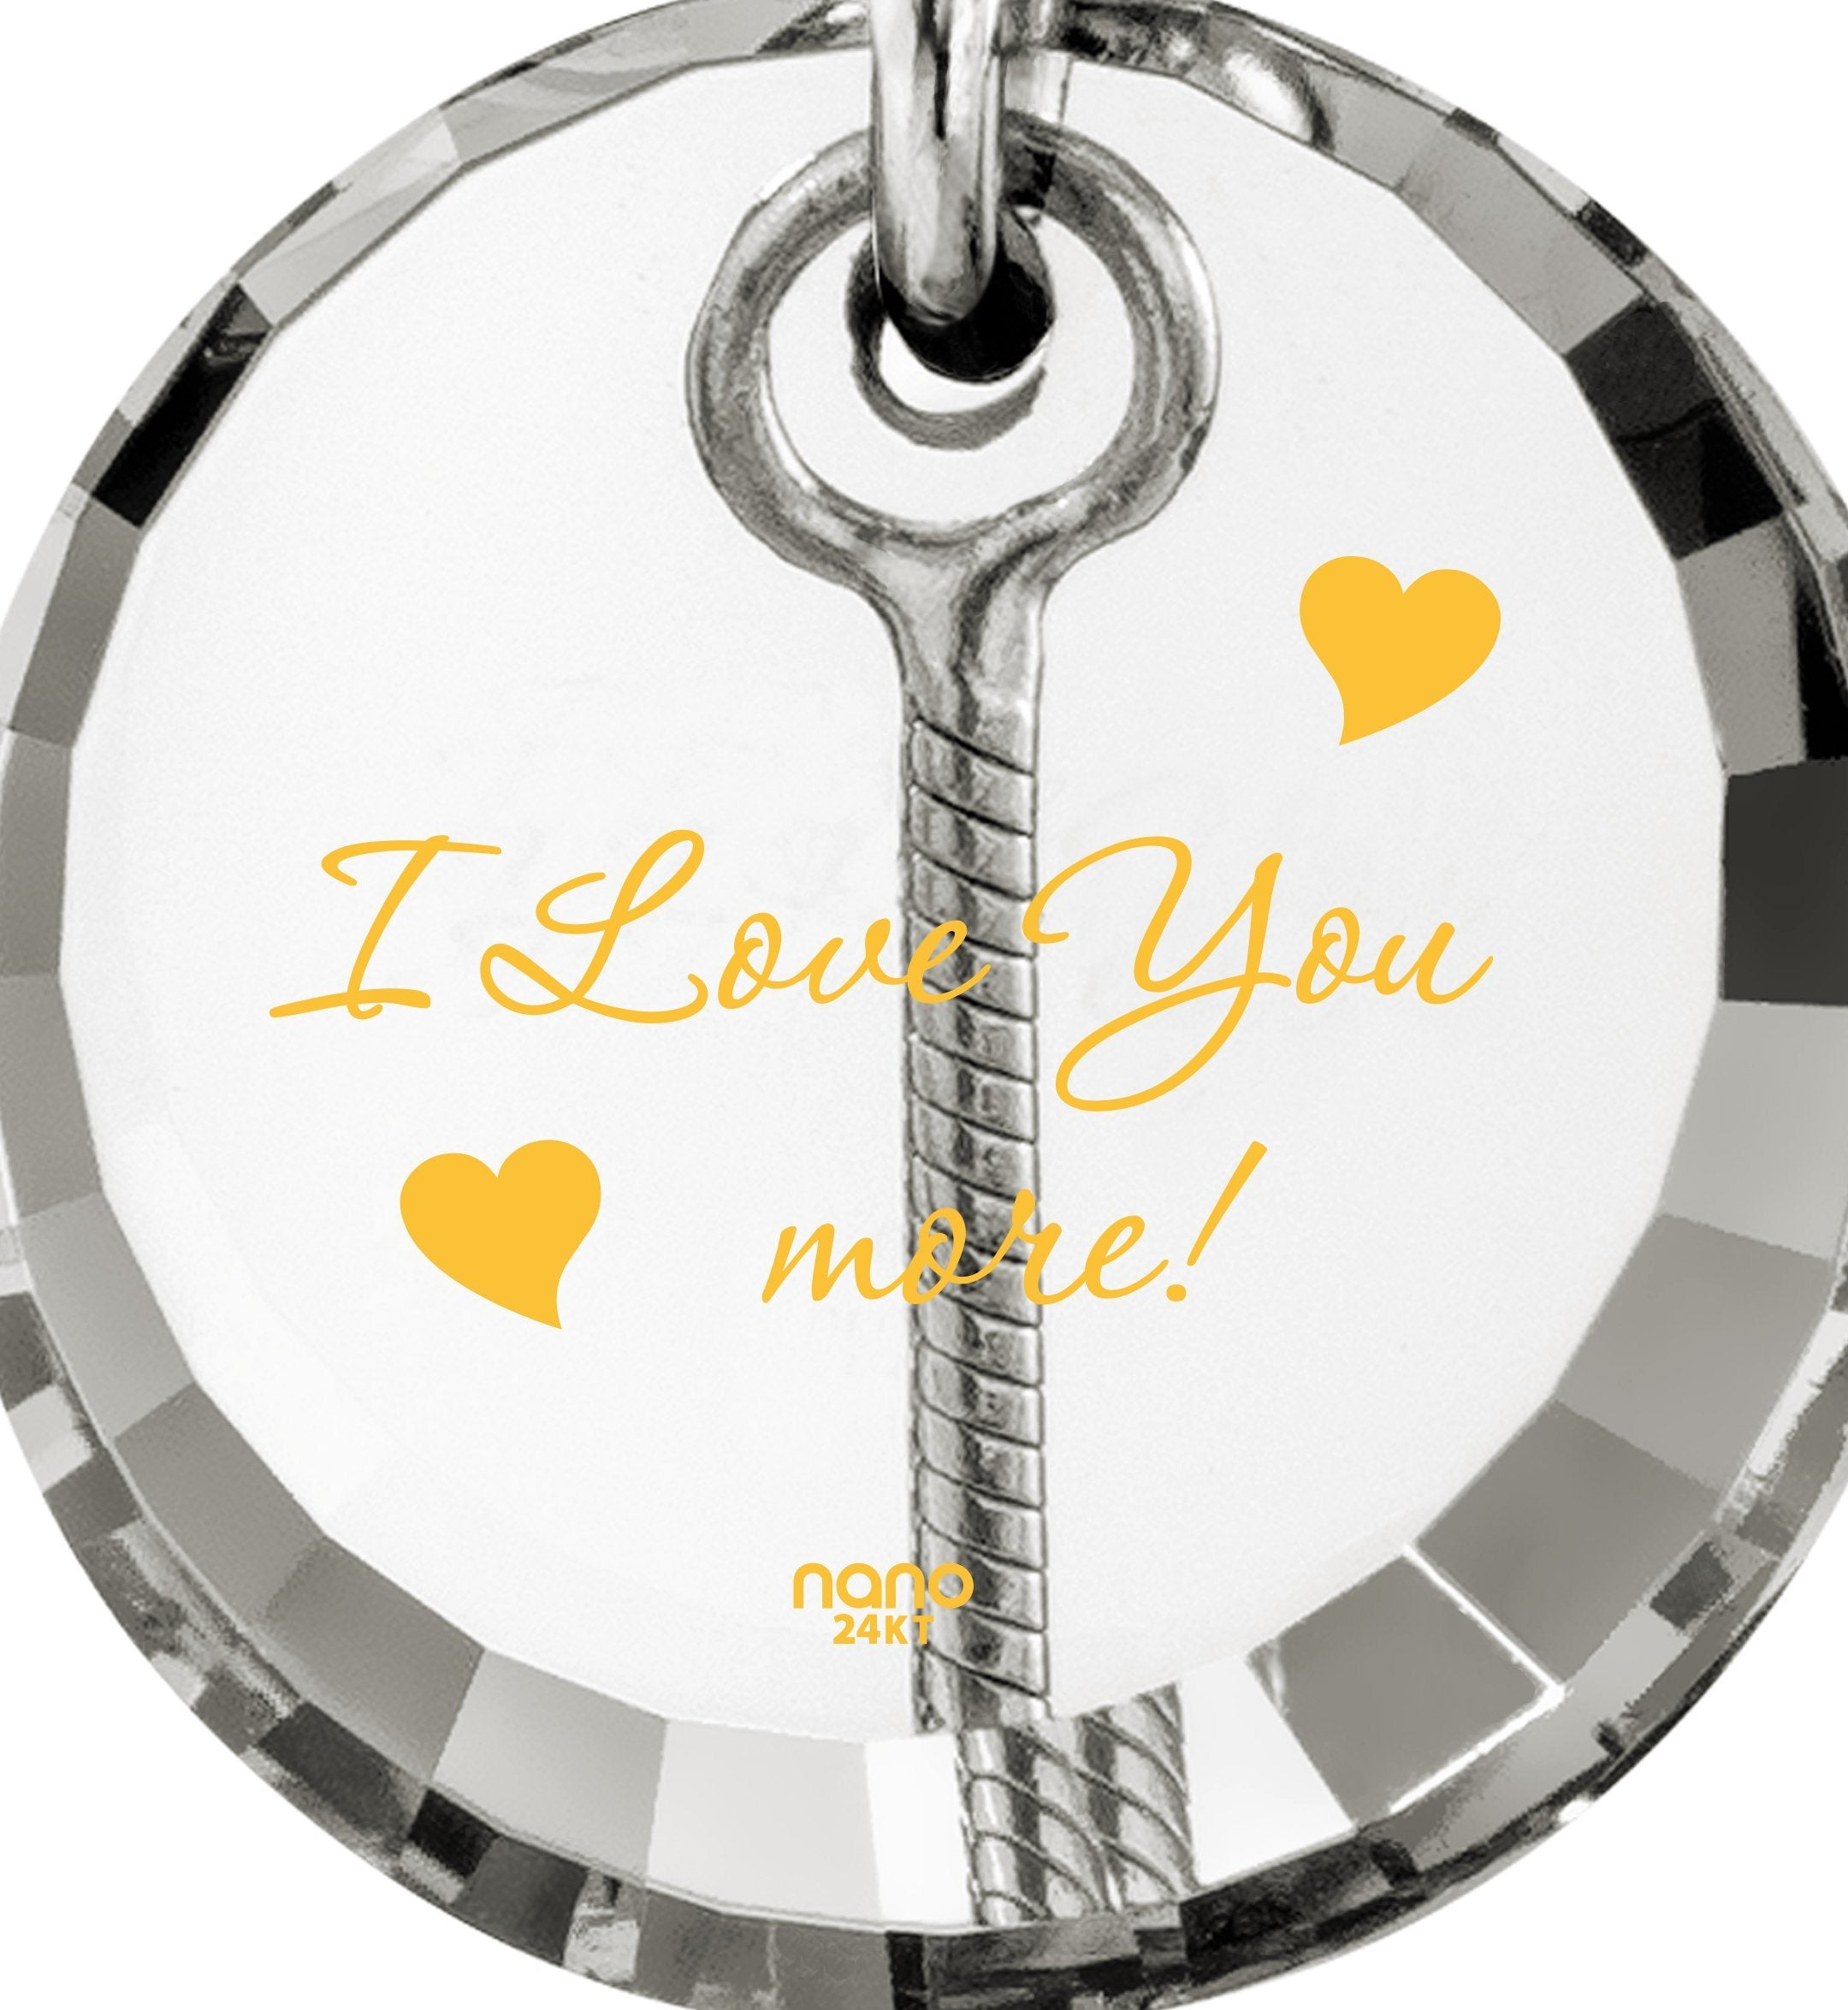 I Love You to the Moon and Back Jewelry: Women's Gifts for Christmas, Girlfriend Birthday Ideas, Nano Jewelry